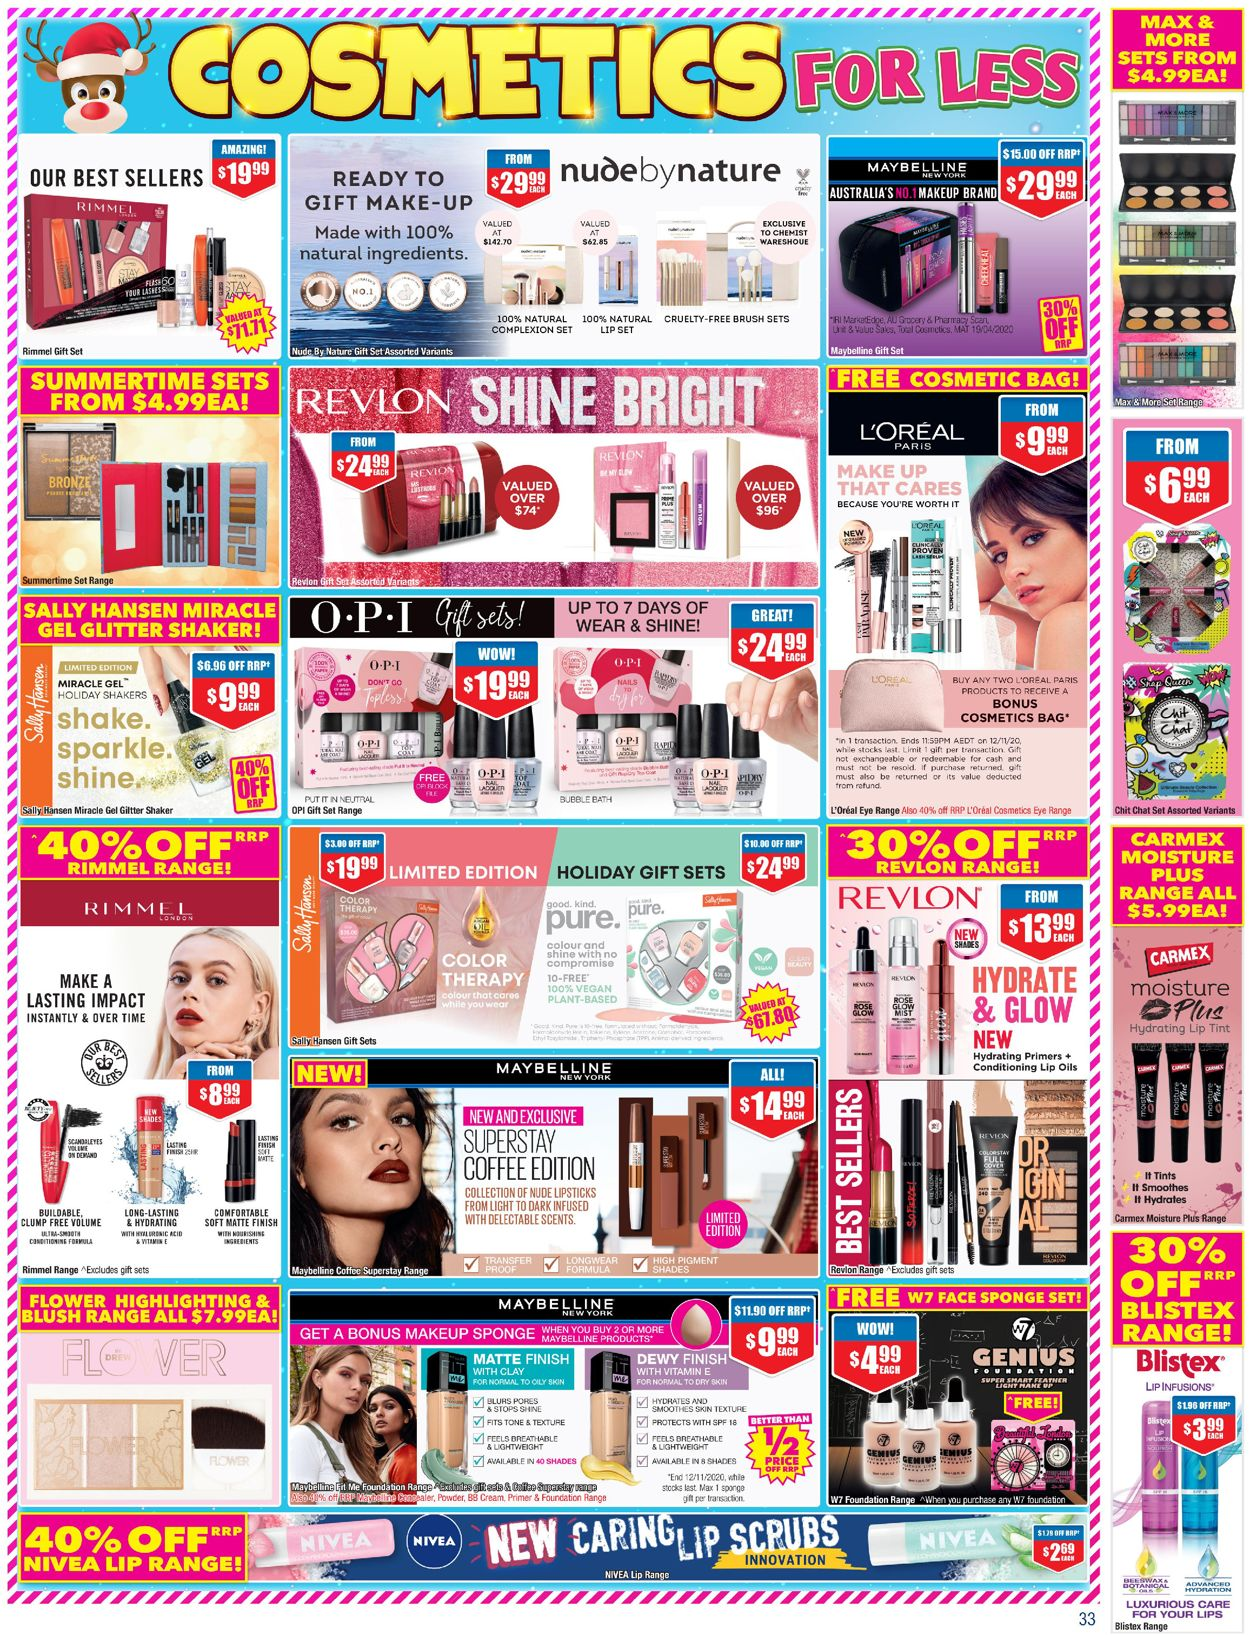 Chemist Warehouse Catalogue - 23/10-12/11/2020 (Page 33)